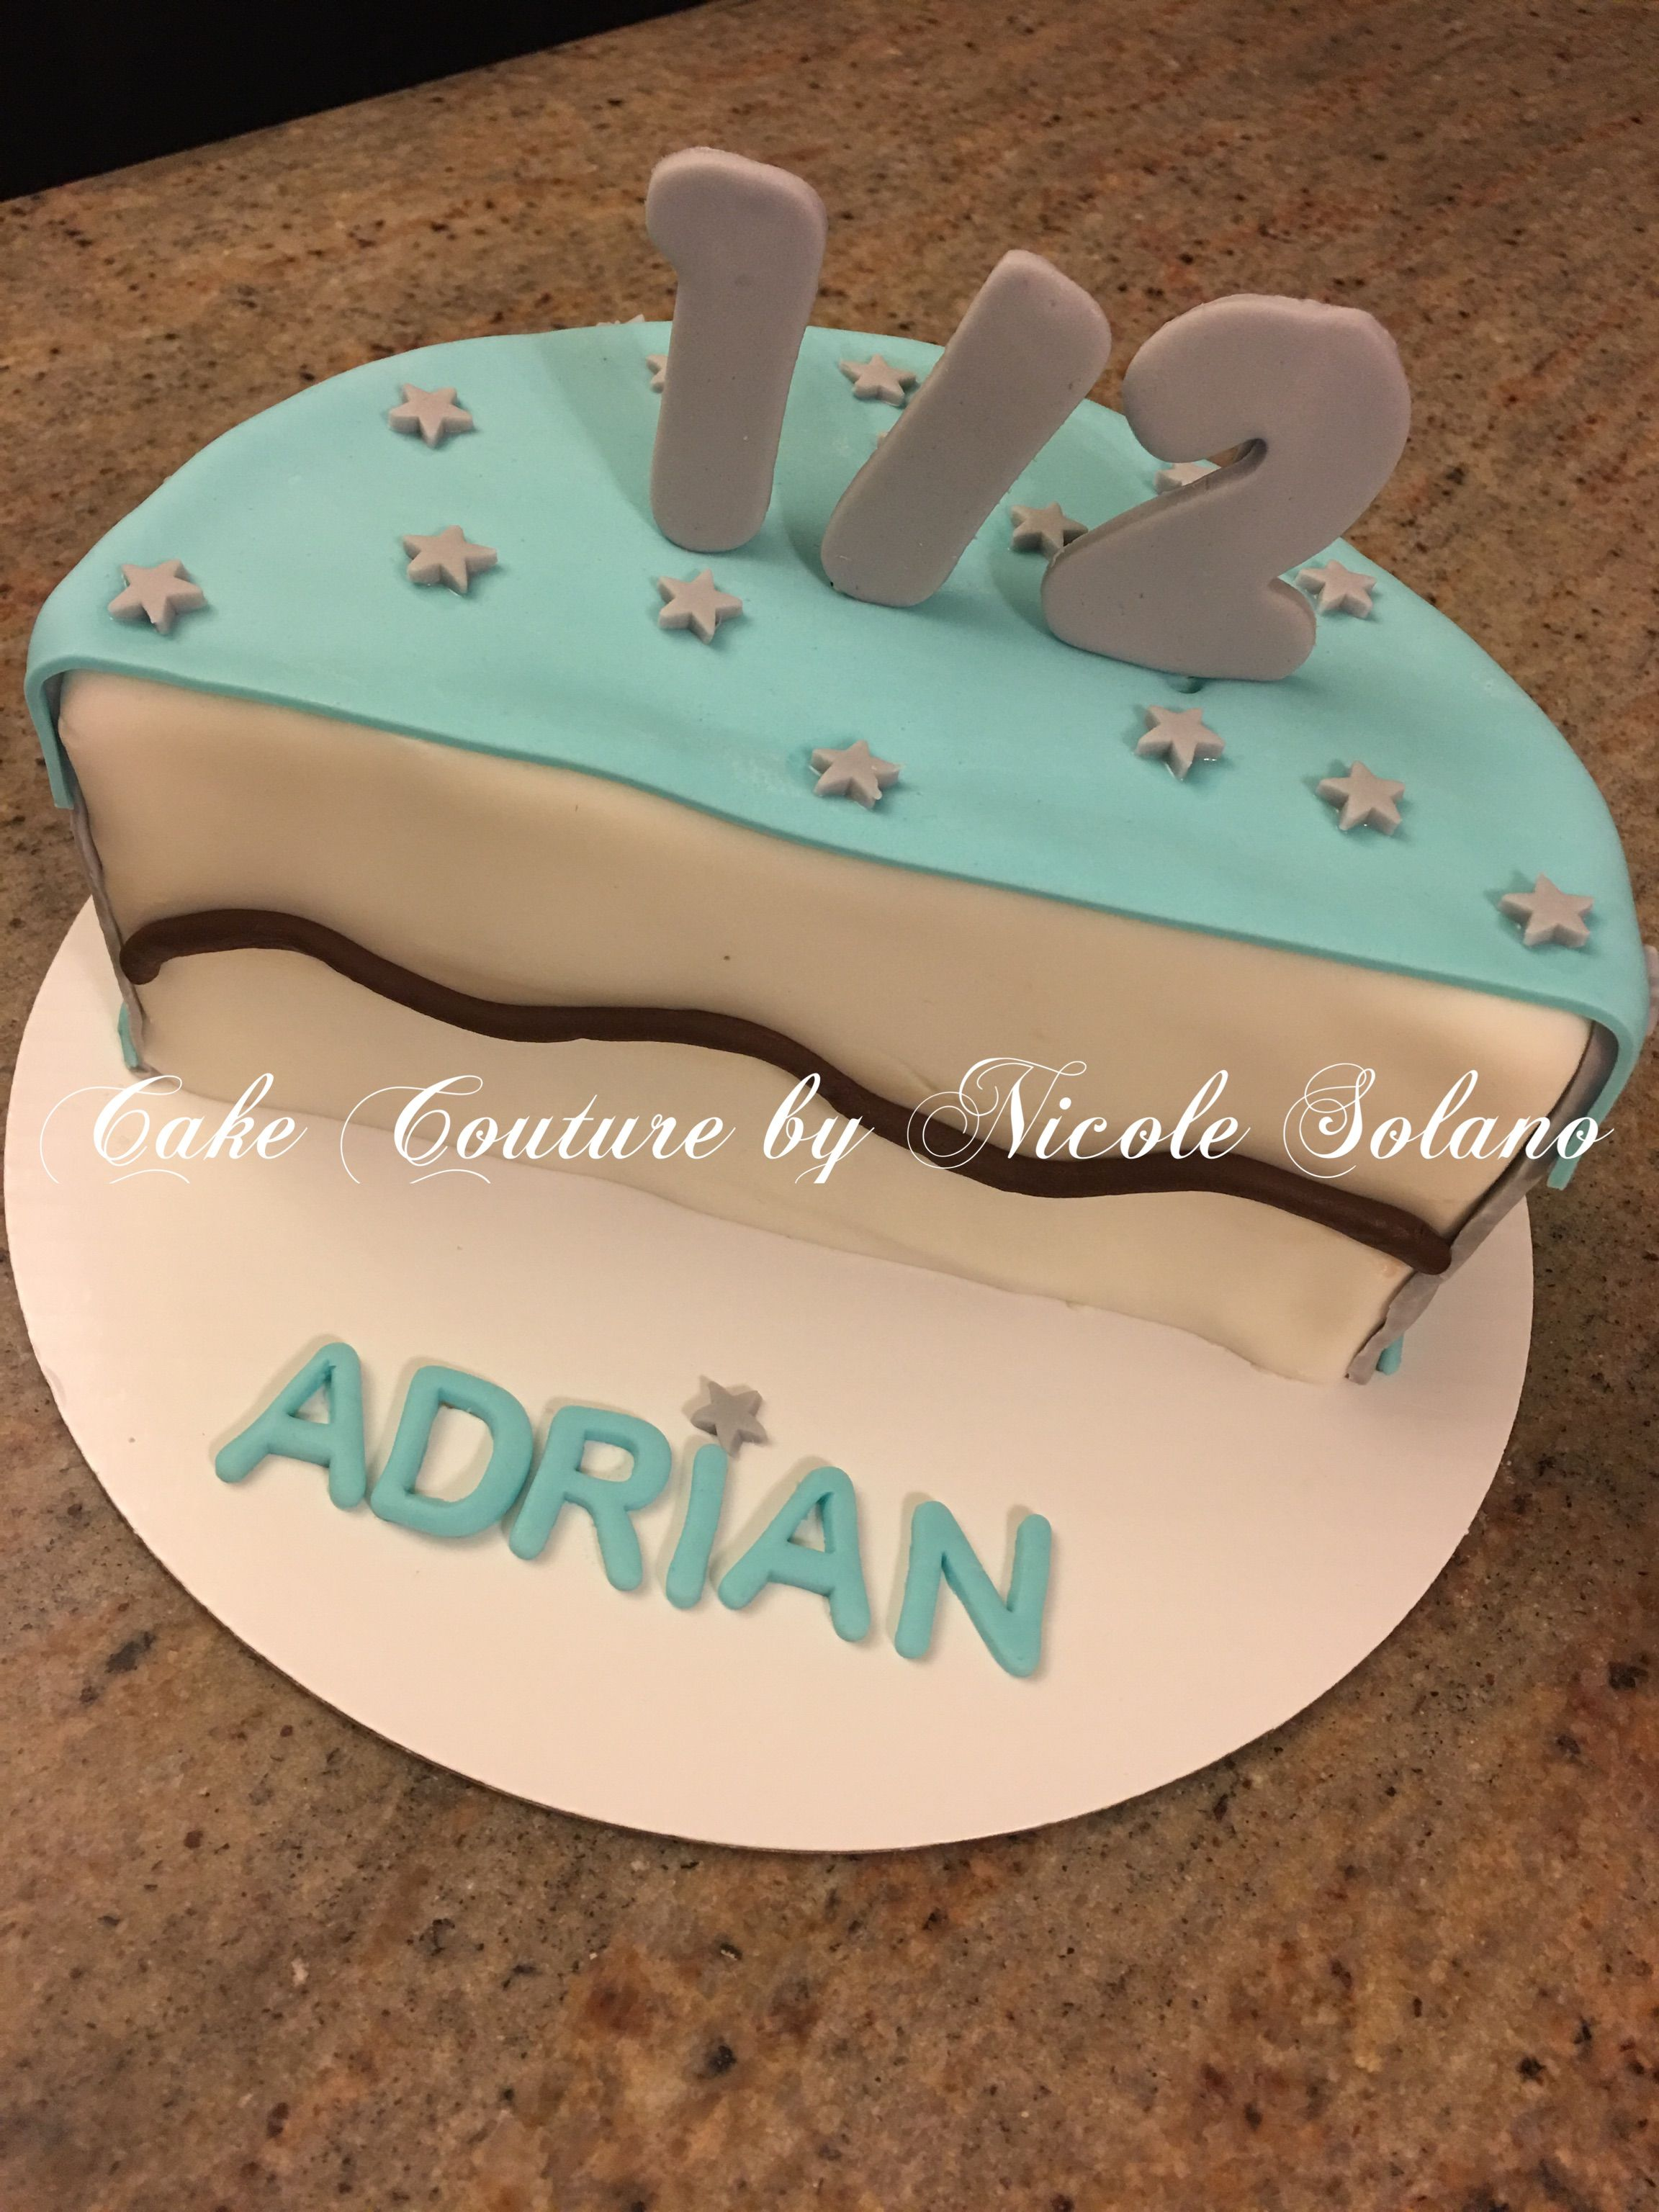 Half Birthday Cake For Boy Cake Couture By Nicole Solano